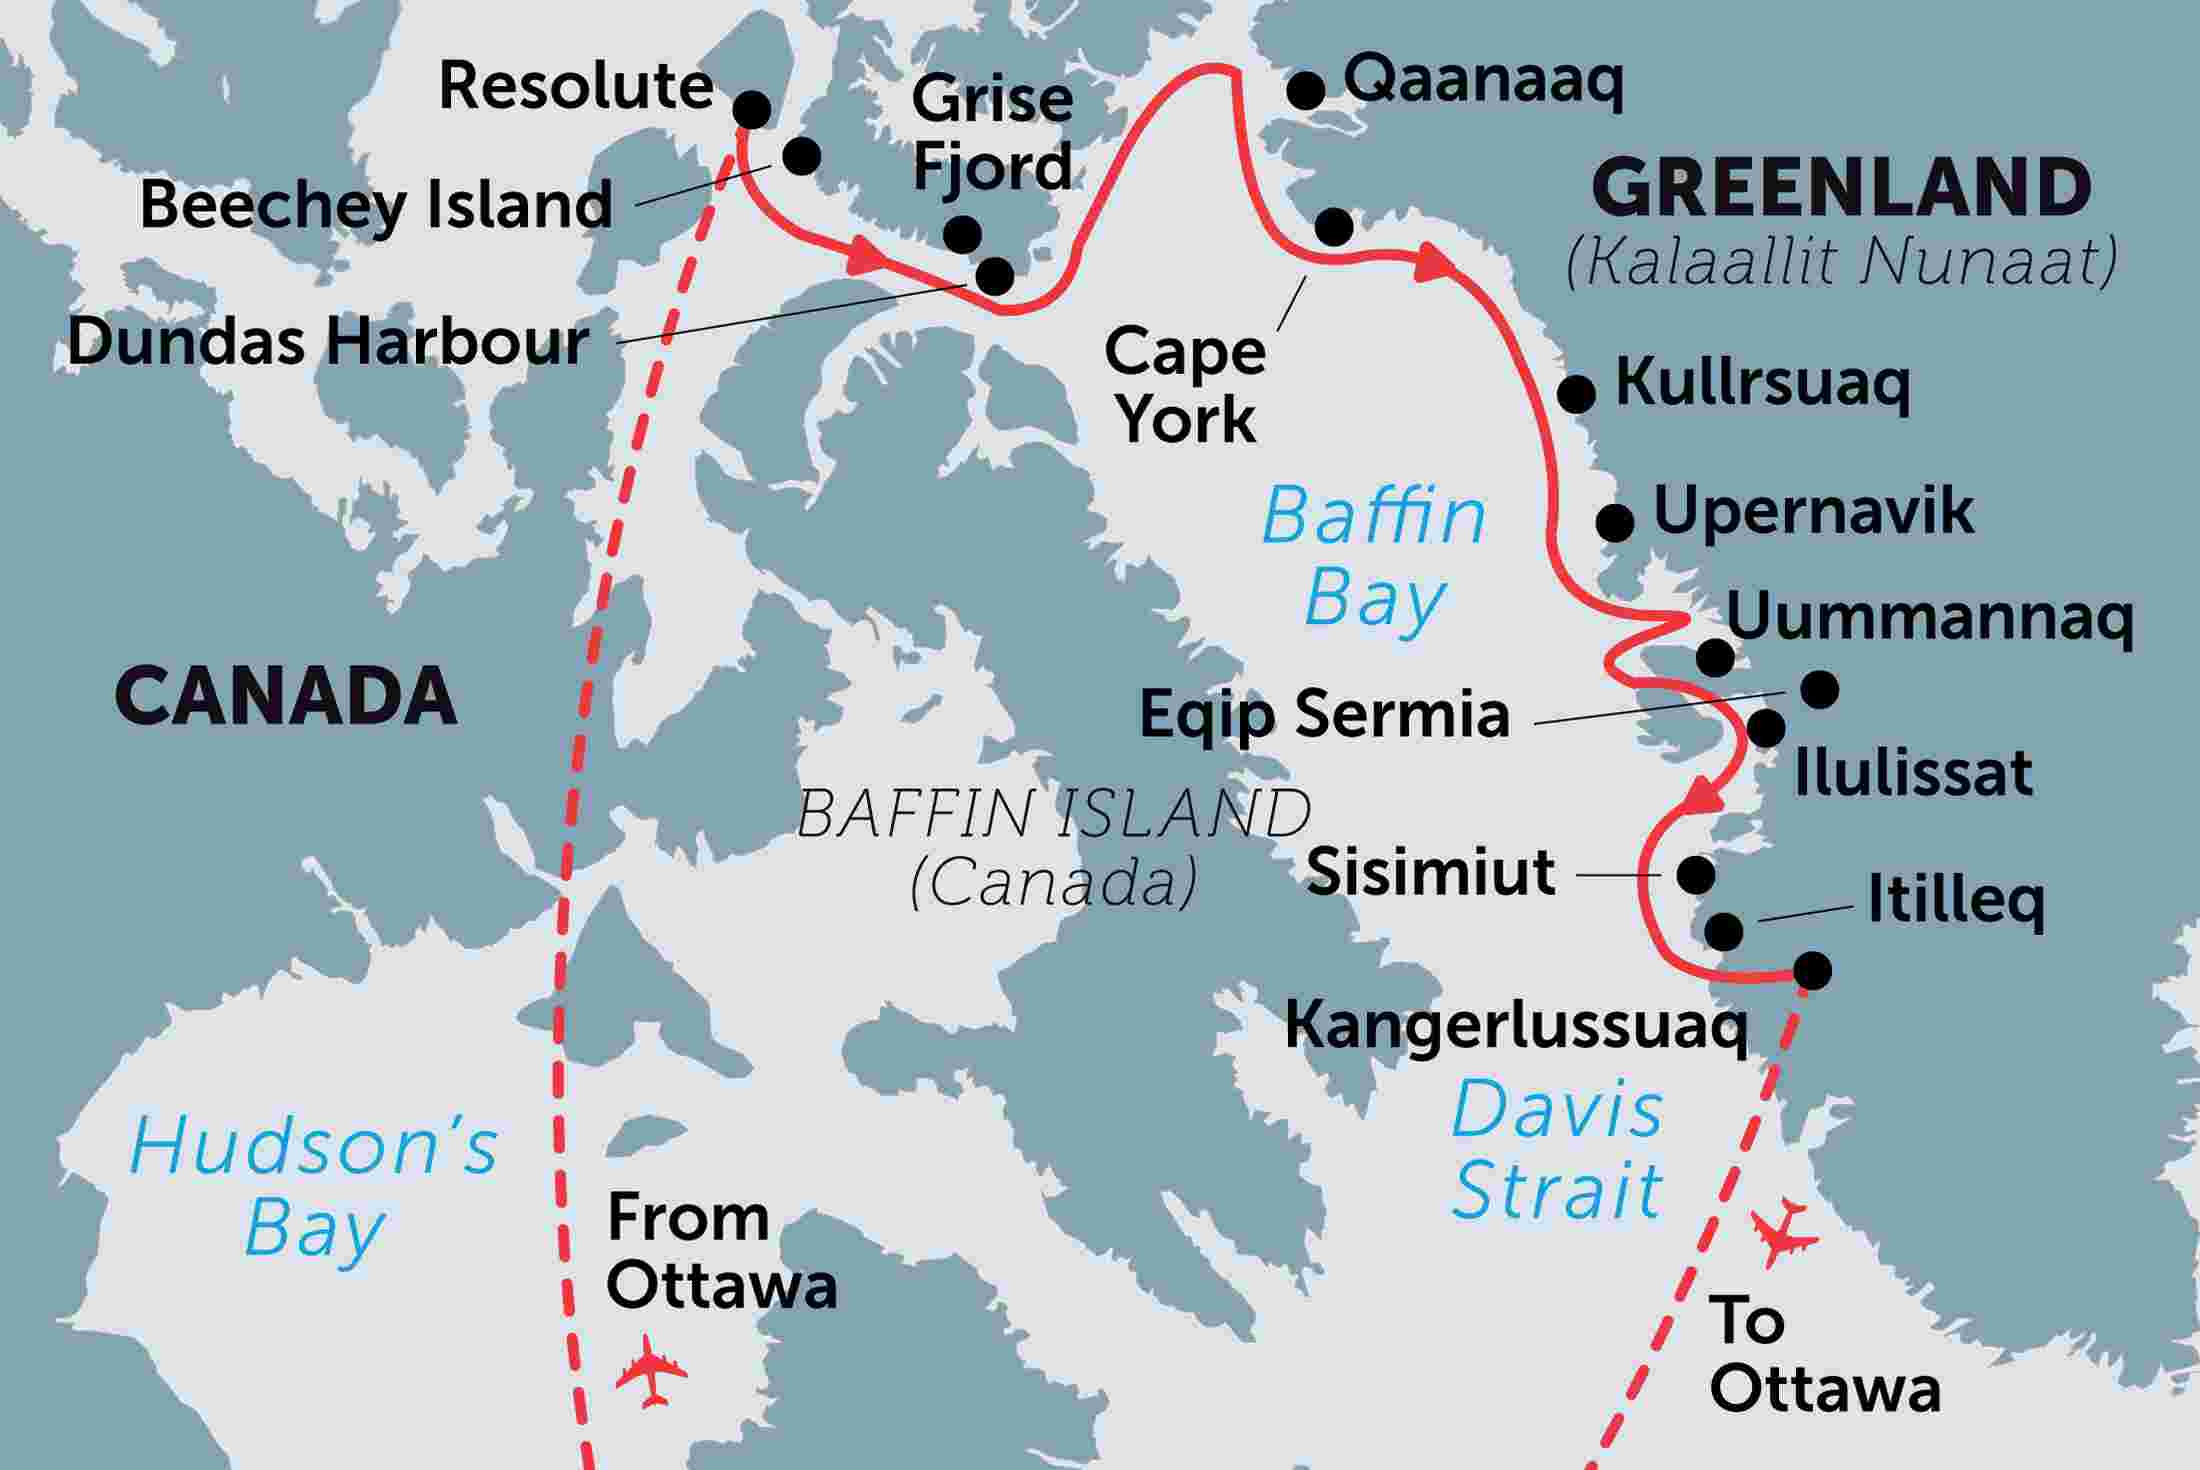 Map Of Canada Davis Strait.Northwest Passage High Arctic Villages And Icebergs Overview Northwest Passage High Arctic Villages And Icebergs